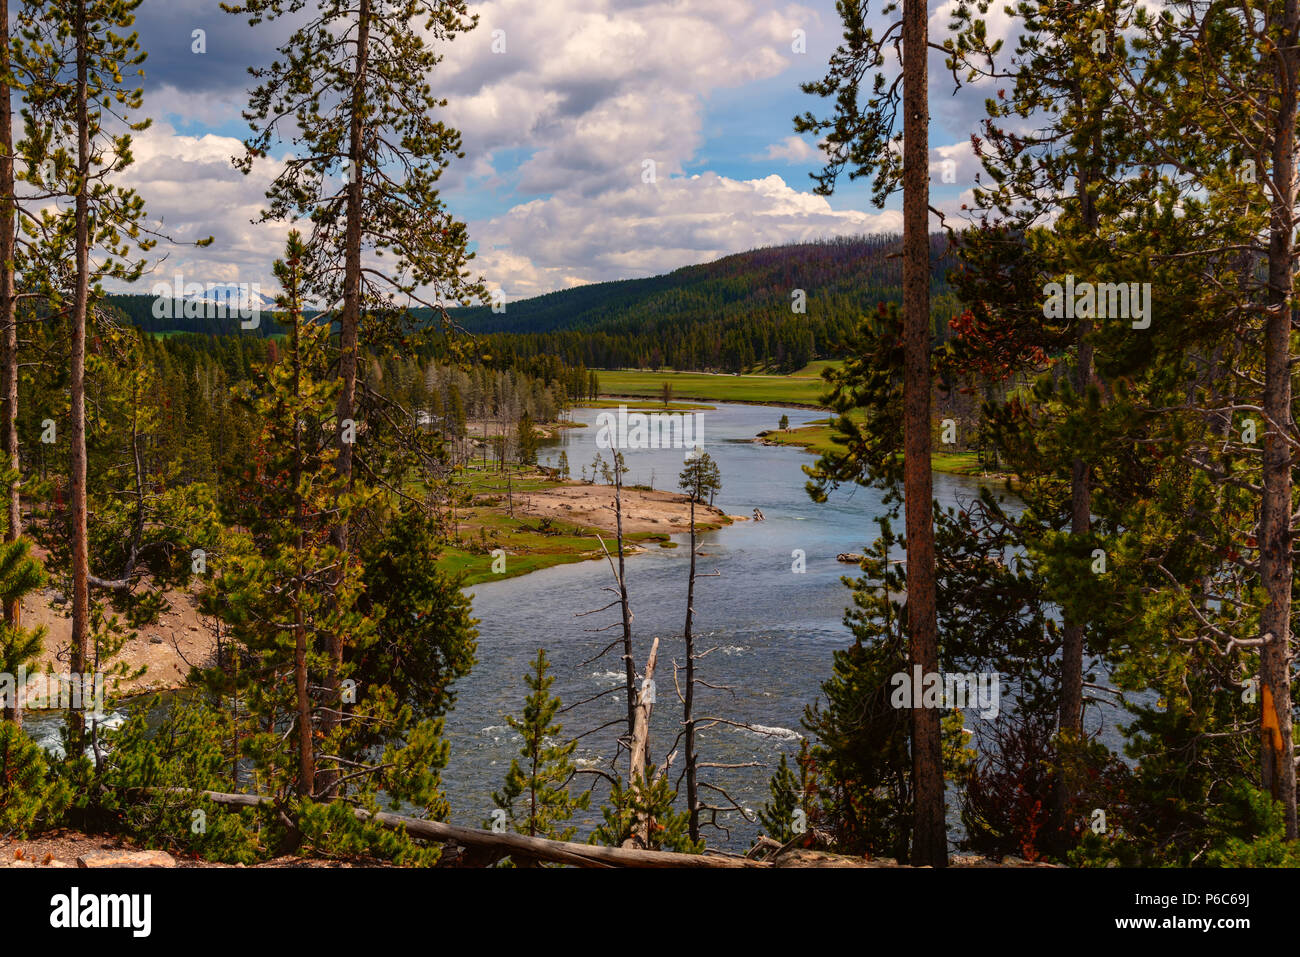 Landscape of the valley with view of the Yellowstone River inside the national park. - Stock Image